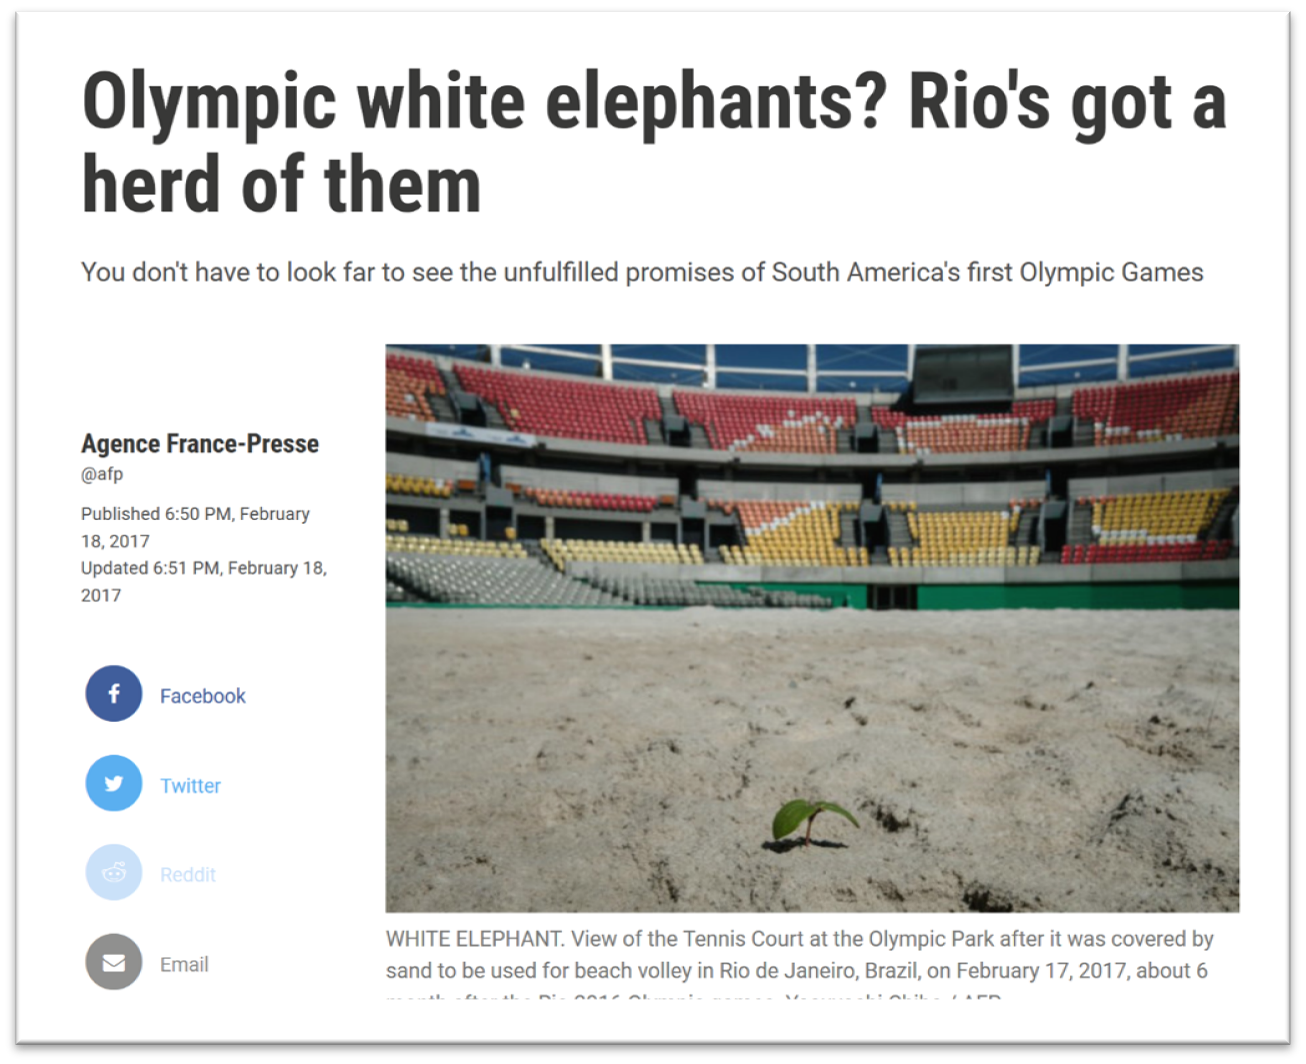 A news story with the headline 'Olympic white elephants? Rio's got a heard of them' and the sub-headline 'You don't have to look far to see the unfulfilled promises of South America's first Olympic Games